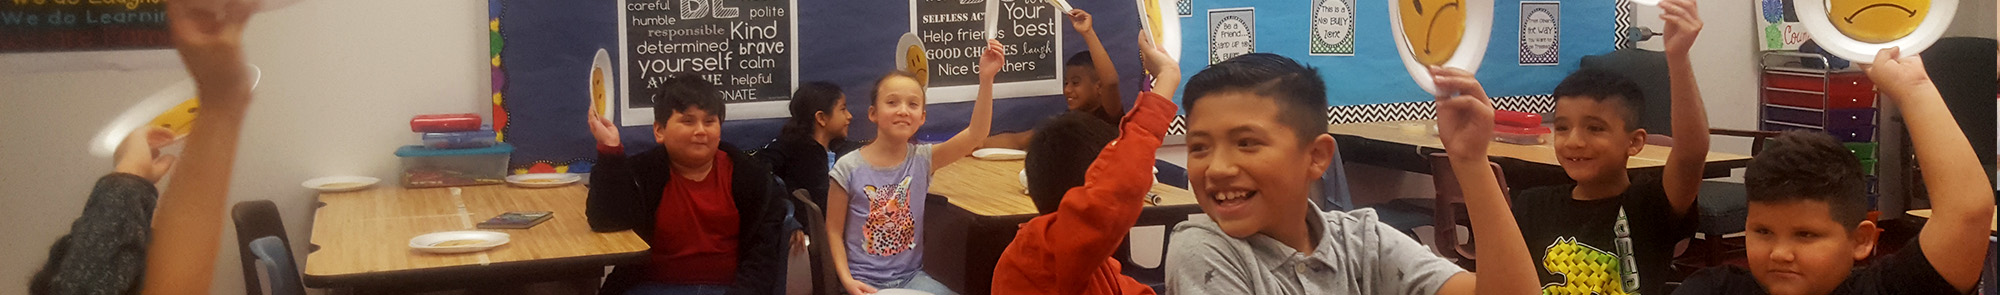 happy elementary students in the classroom with smile plates